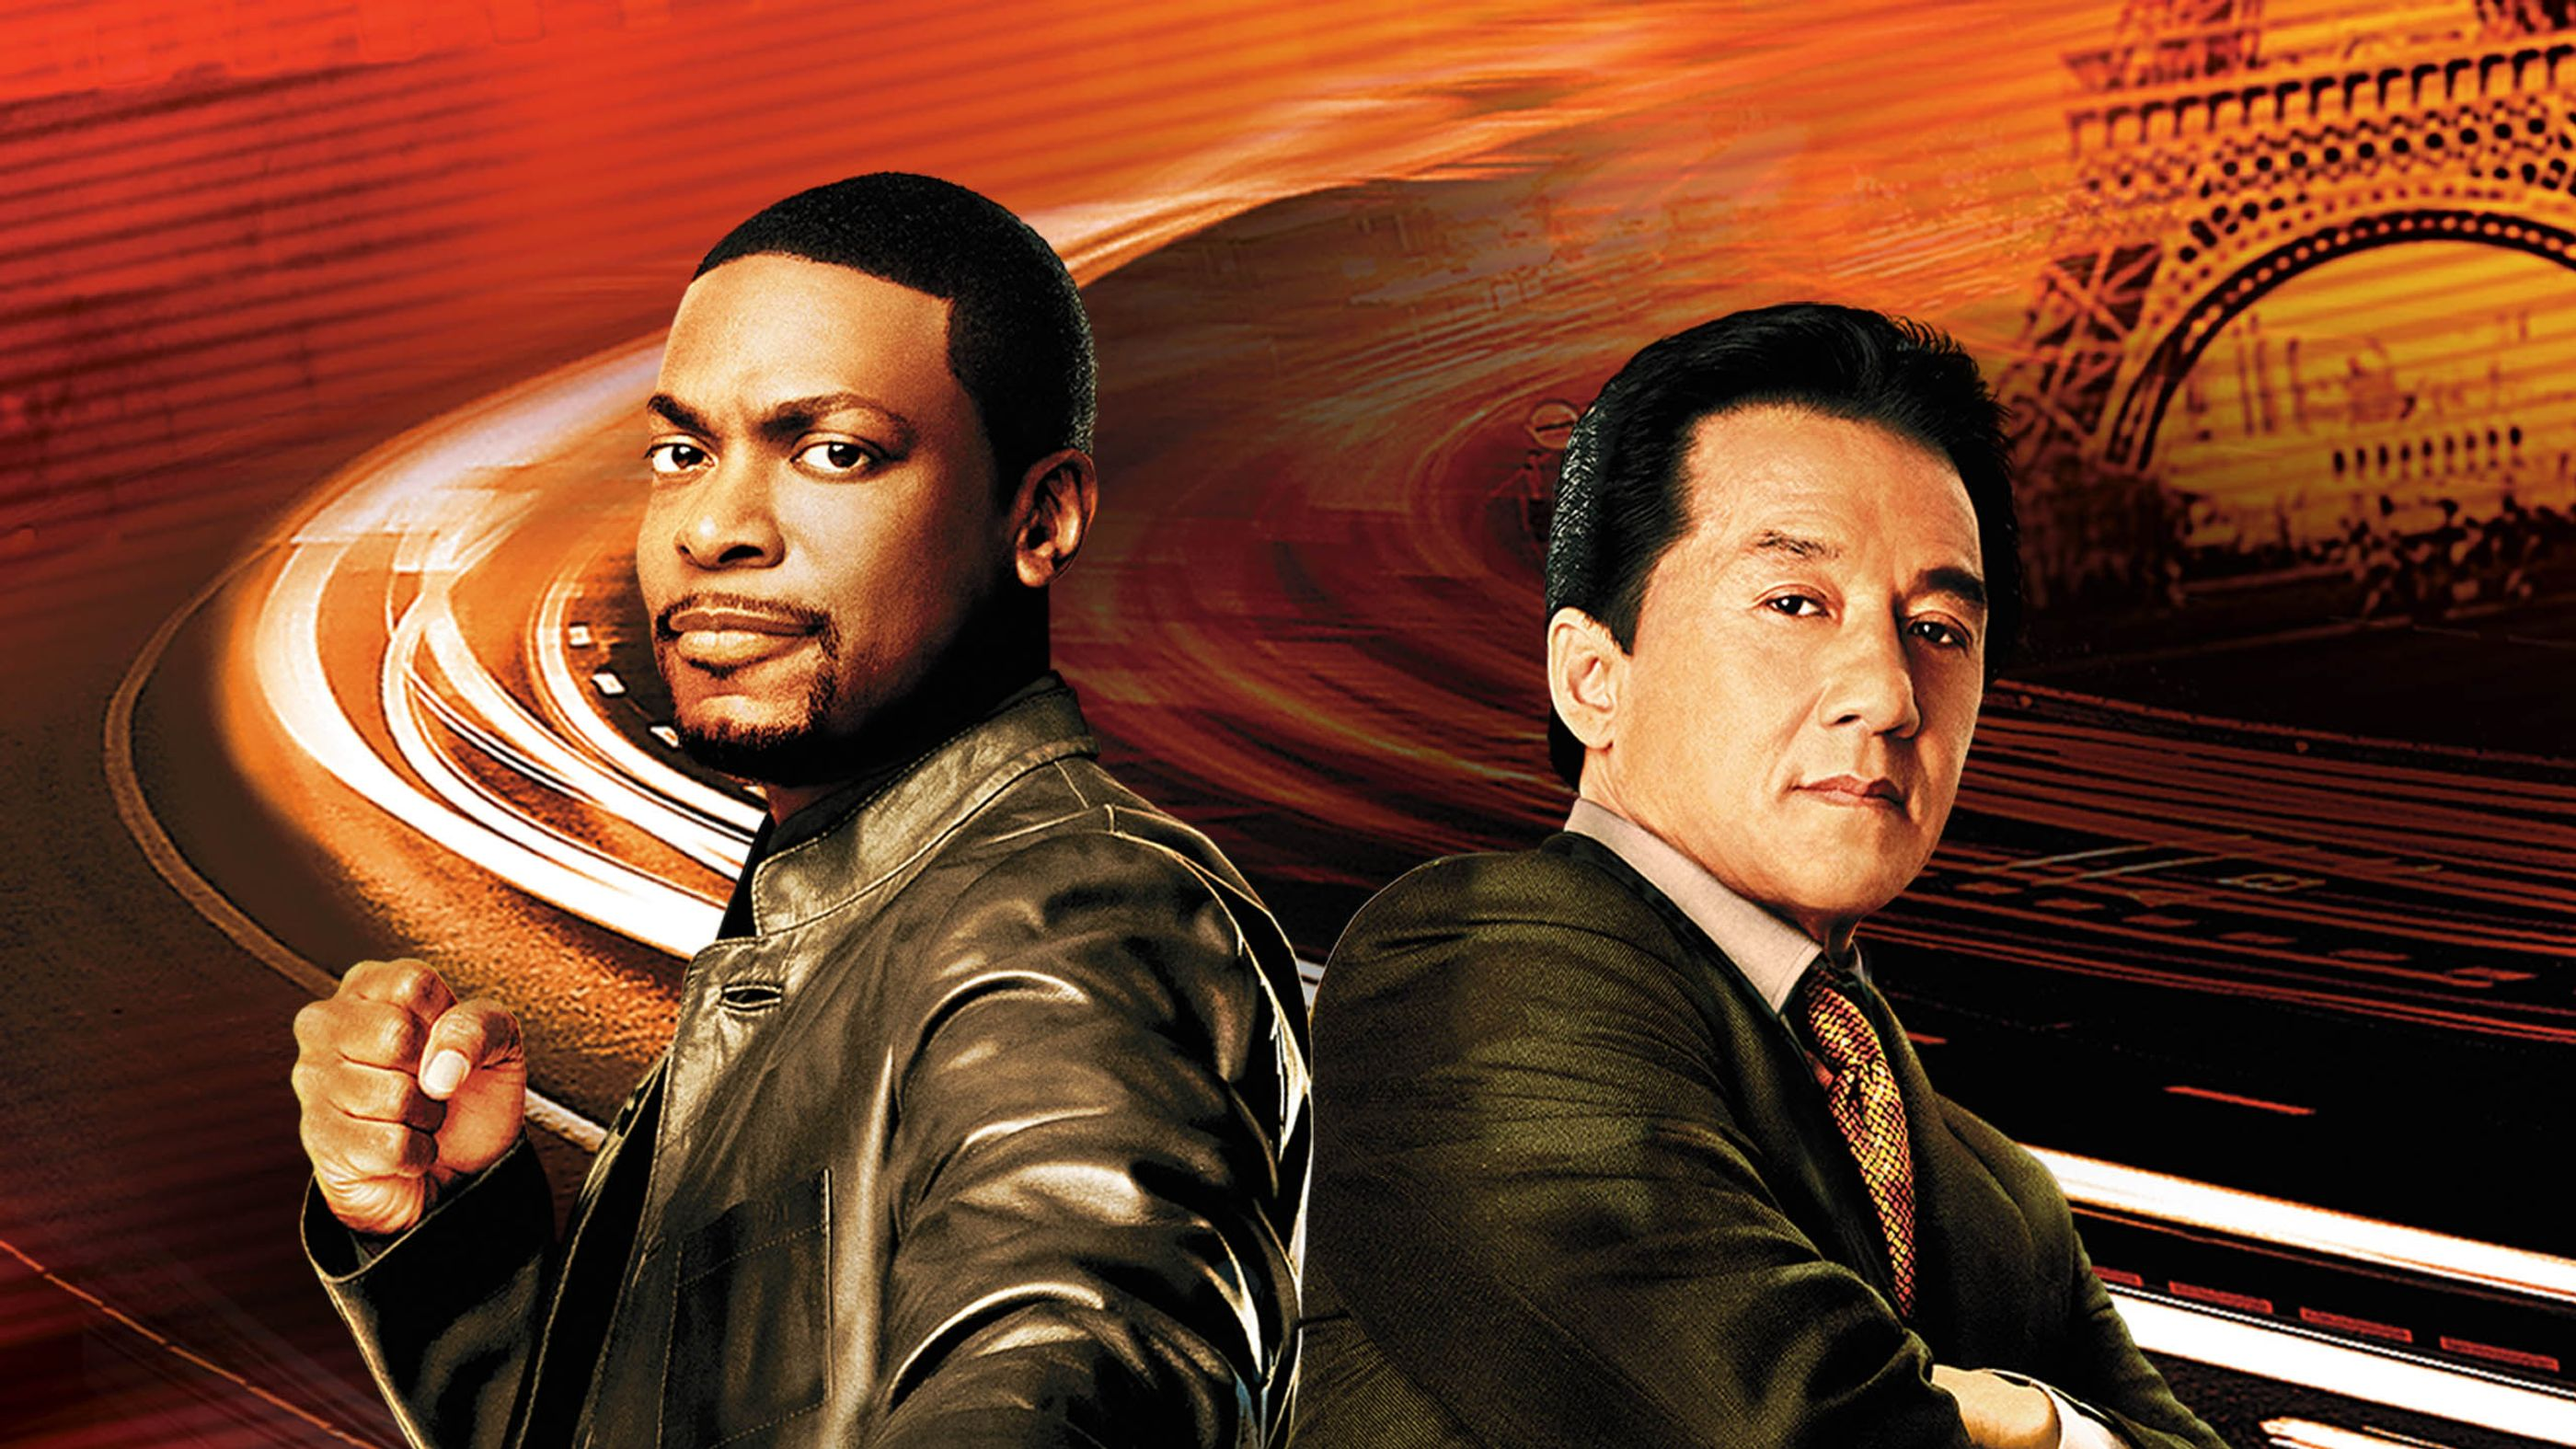 rush hour 3 download 480p